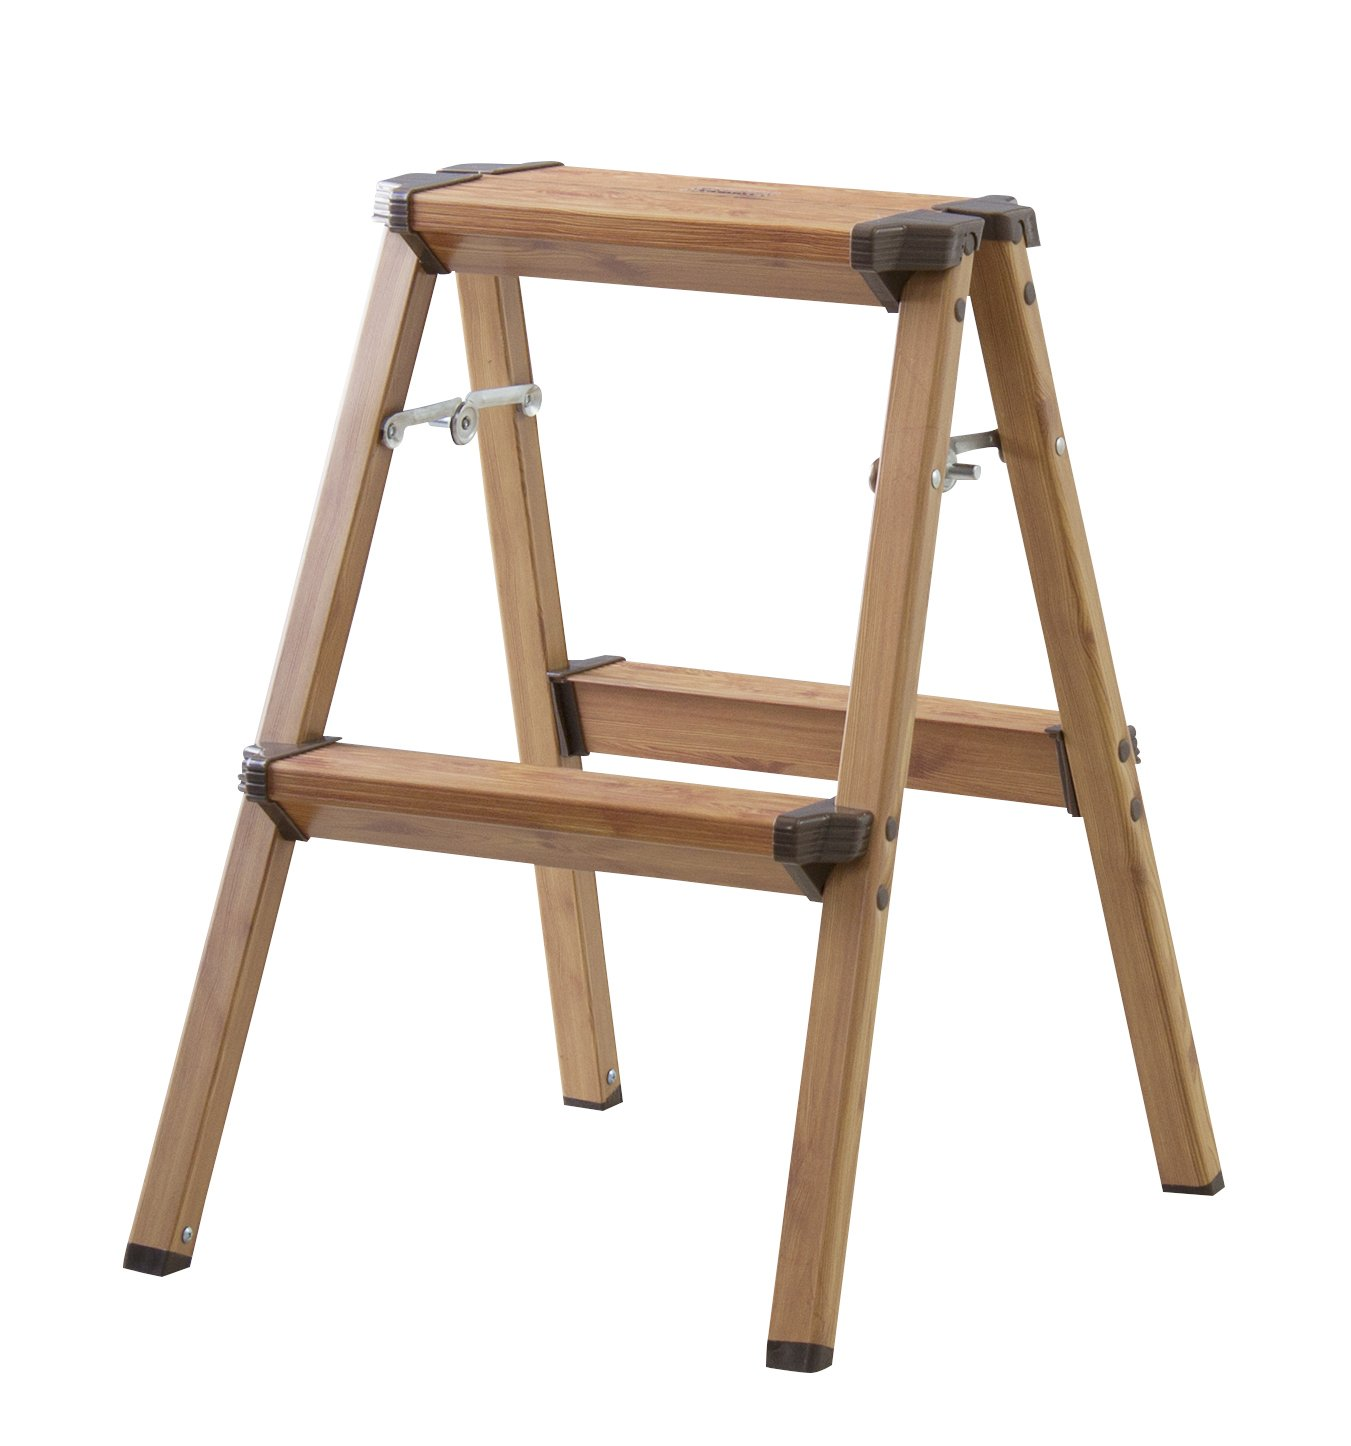 Azumaya 22 Height Folding Step Stool Medium Size PC-402